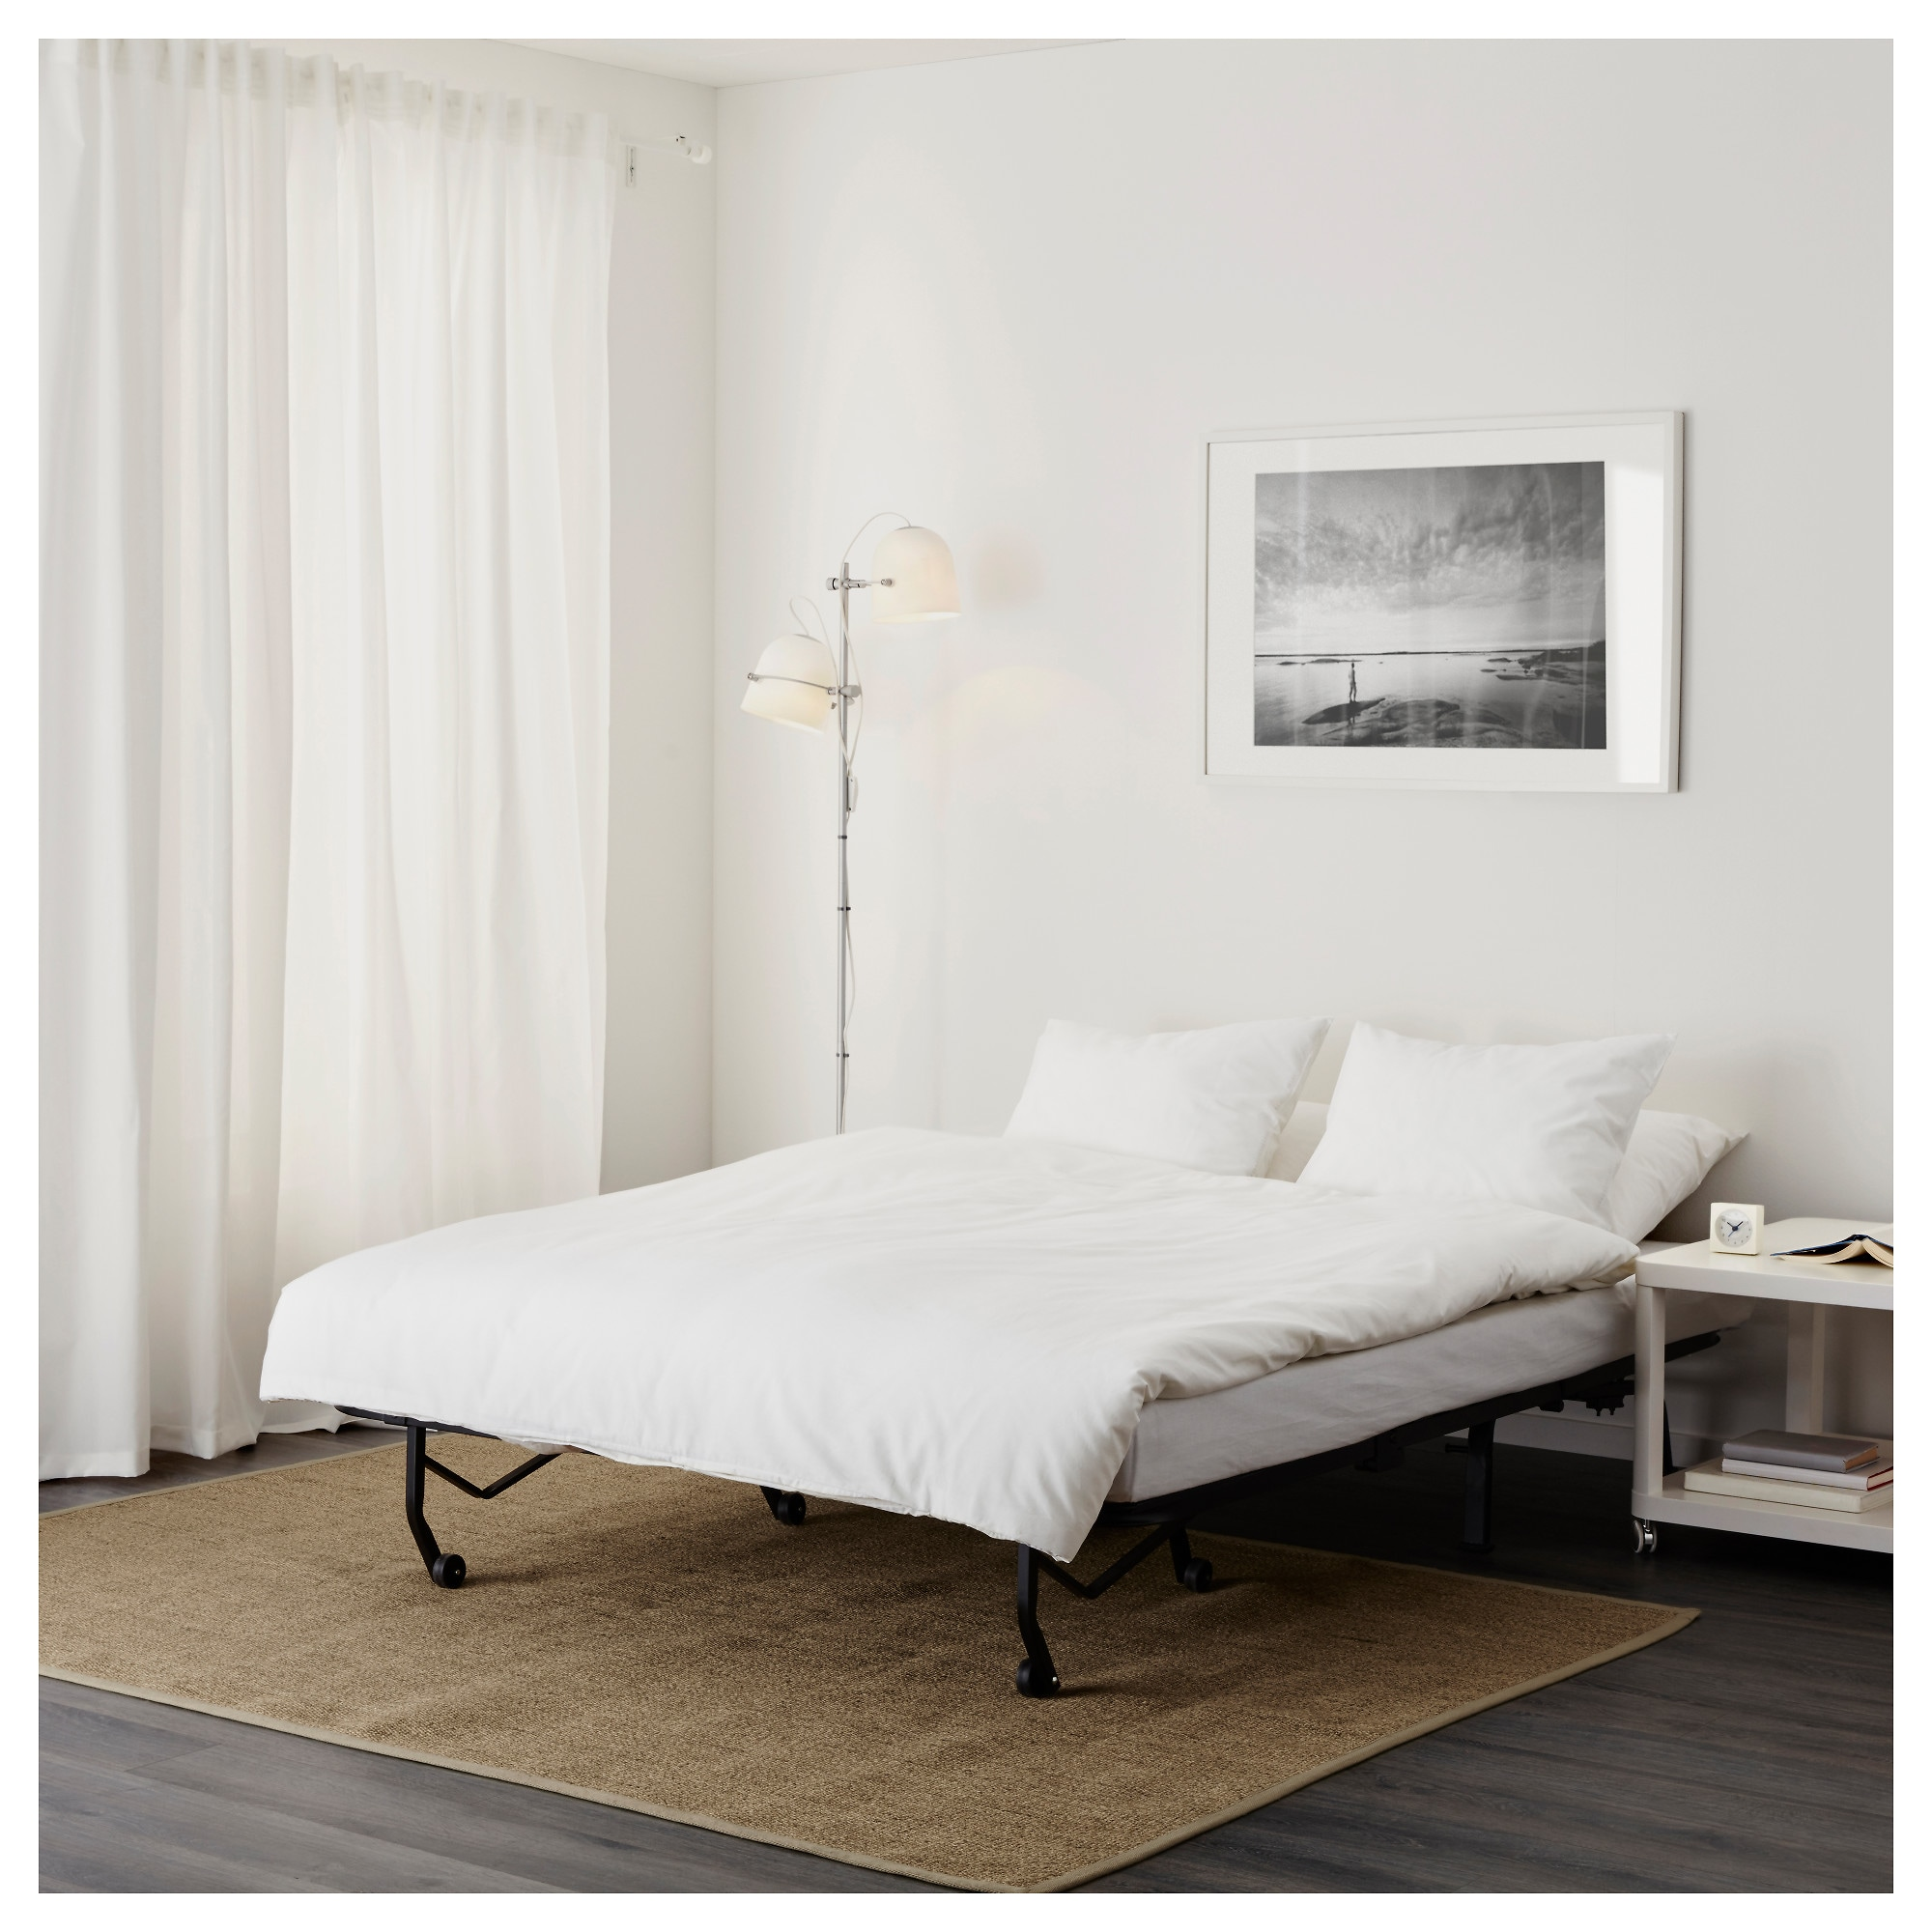 LYCKSELE MURBO Sofa Bed   Ransta White   IKEA